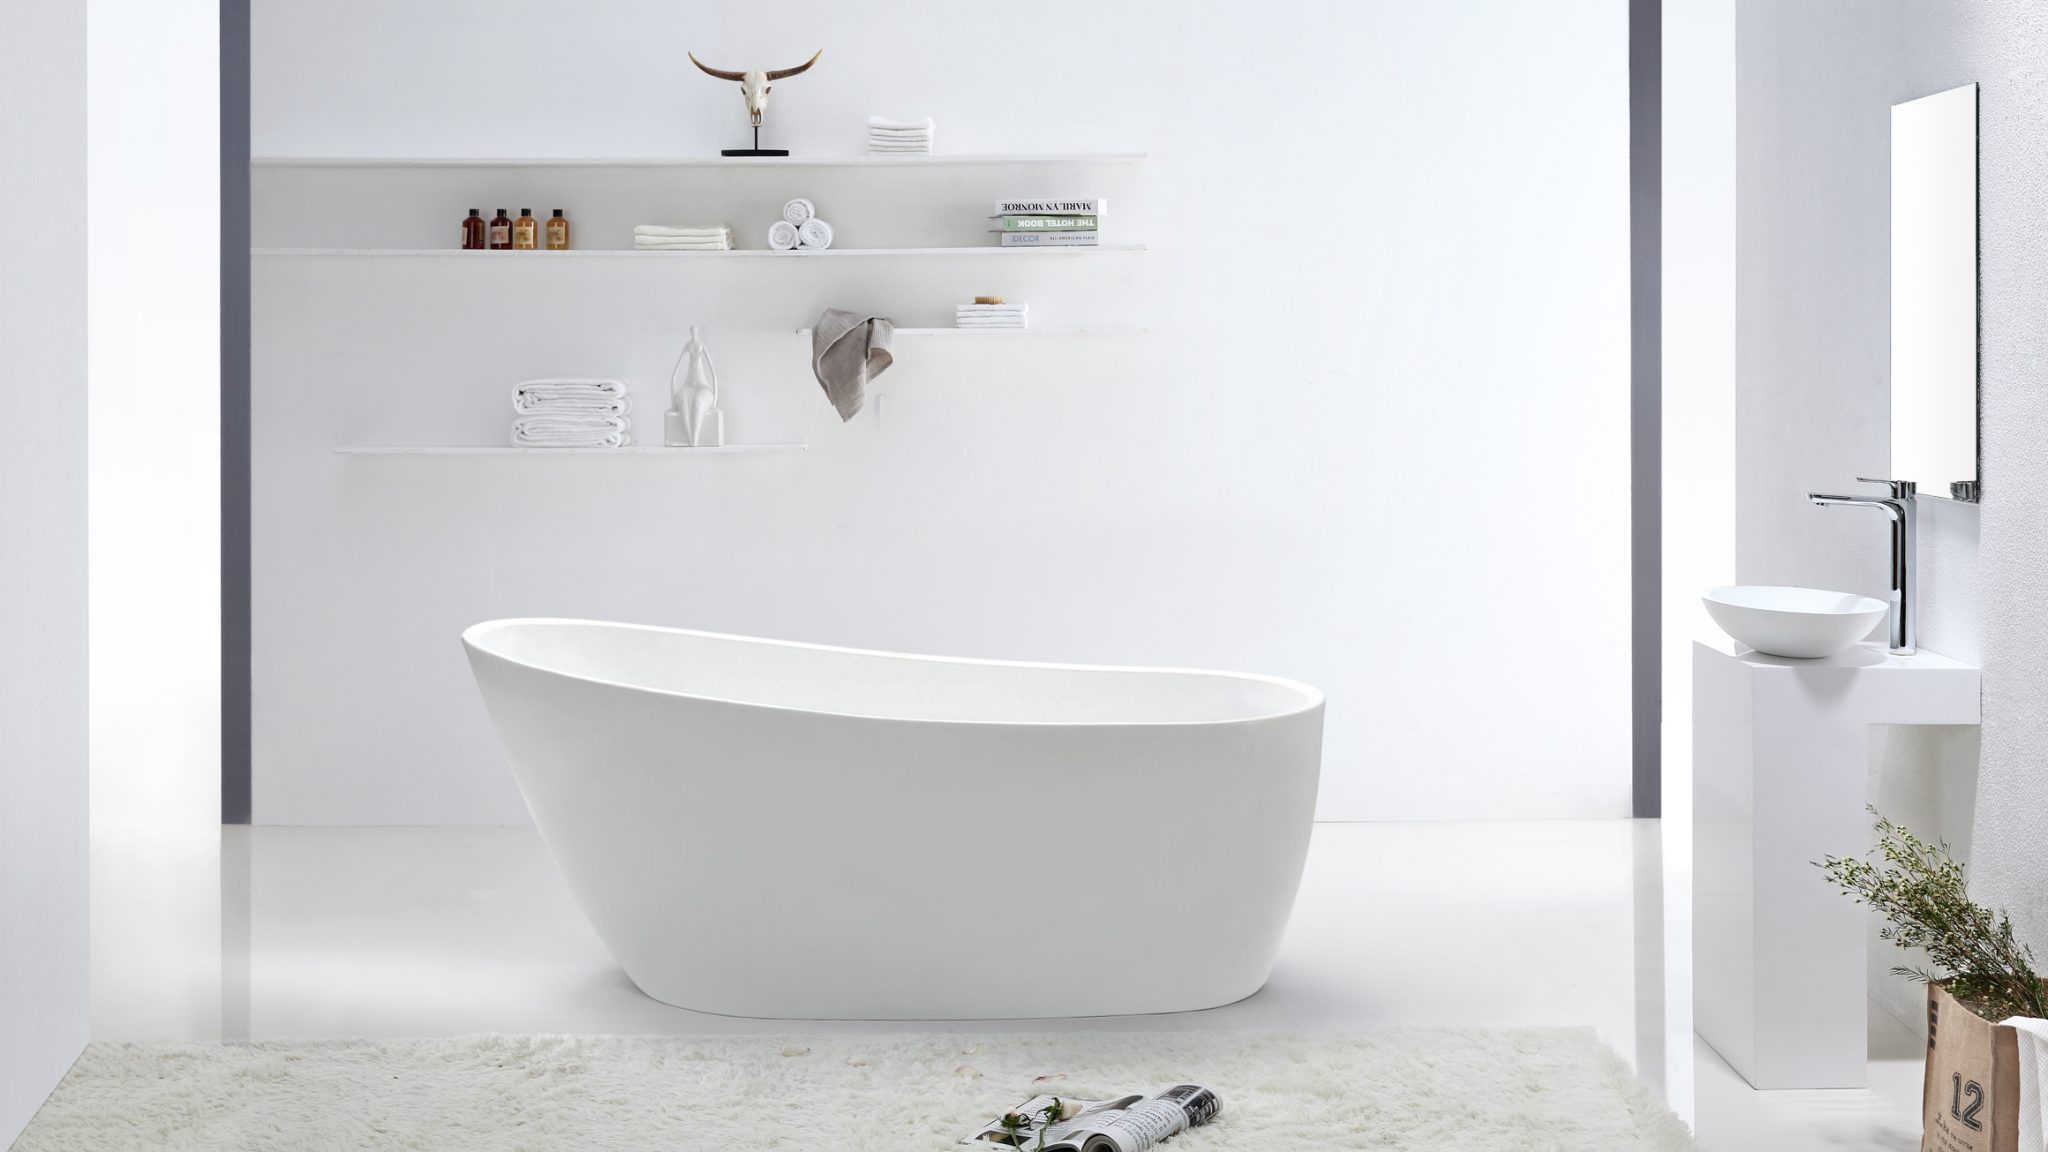 Island tub drain acri tec bath and kitchen products - Claude 54